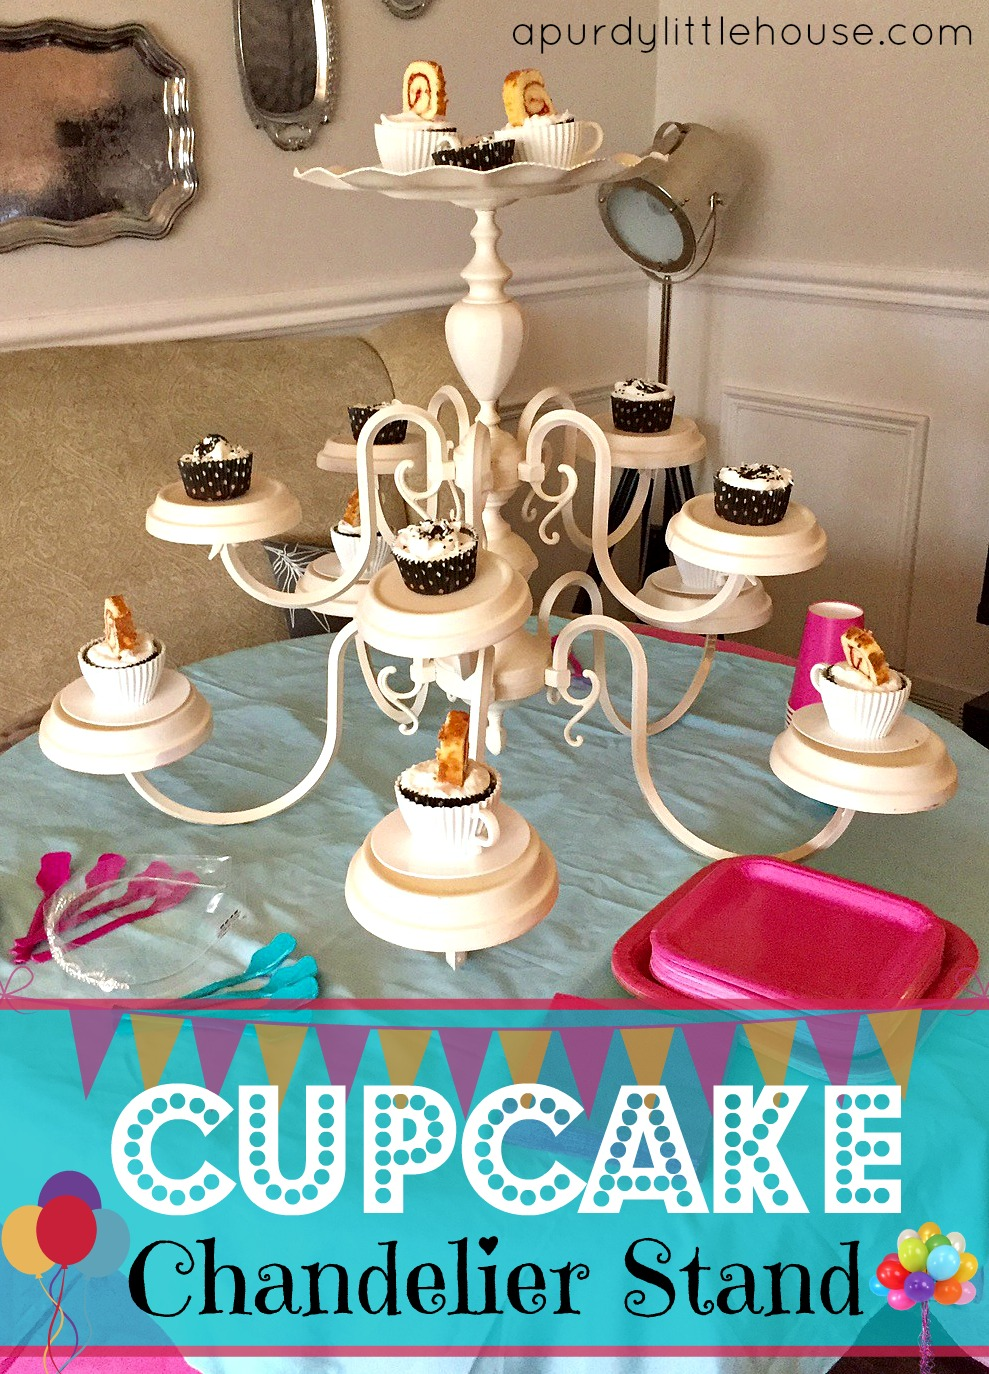 Chandelier cupcake stand a purdy little house how to make a chandelier cupcake stand girls spa party chandelier cupcake stand arubaitofo Image collections